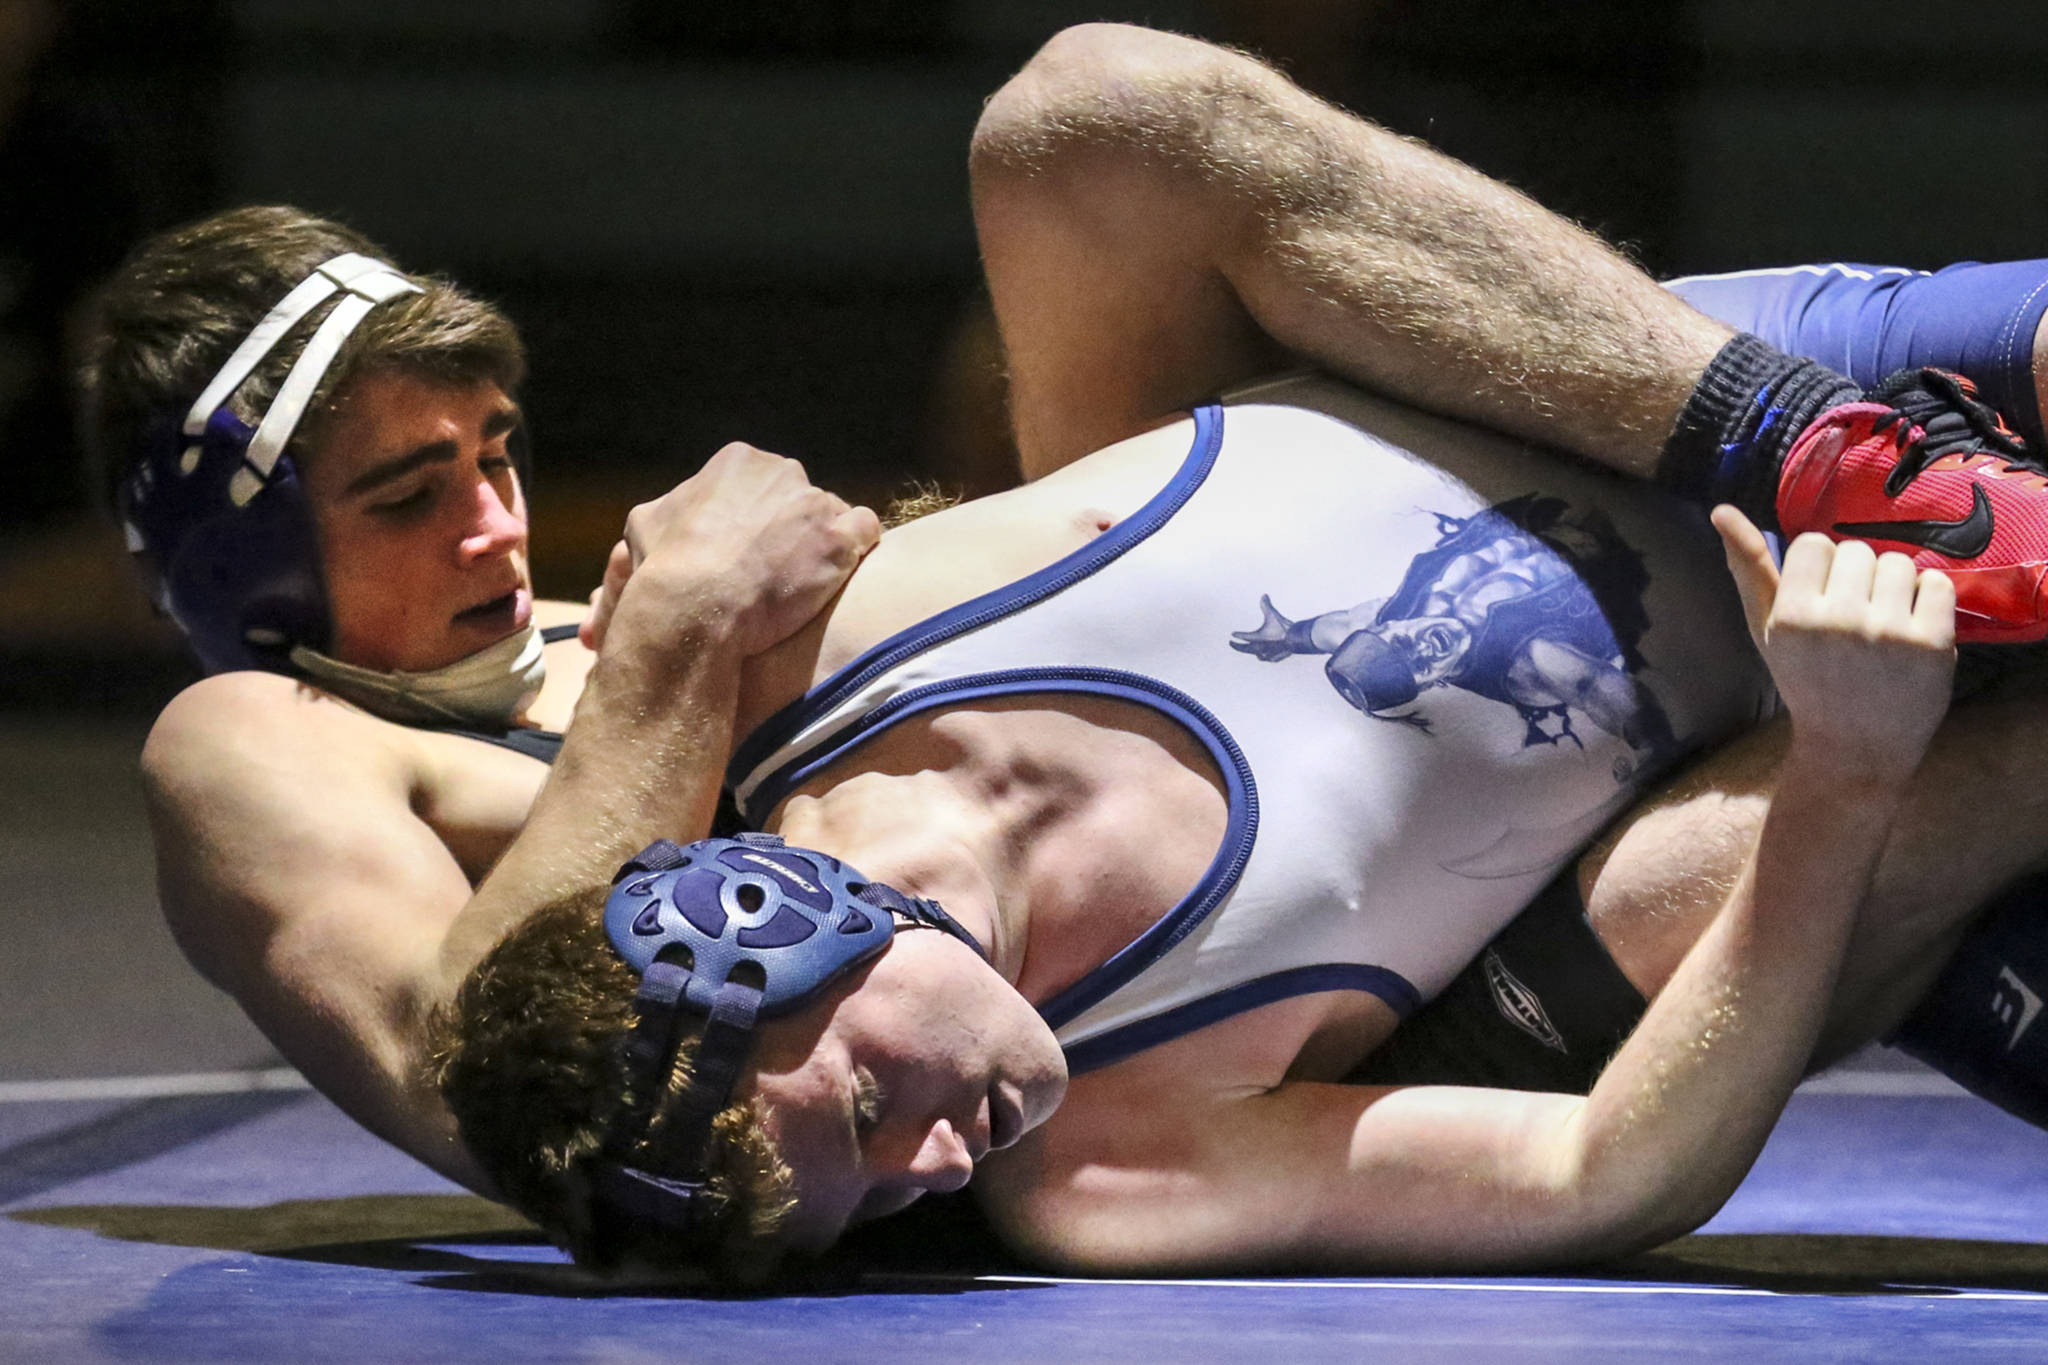 Granite Falls' Hayden Long (left) works to pin Sultan's Michael Moss at Sultan High School on Jan. 24. (Kevin Clark / The Herald)